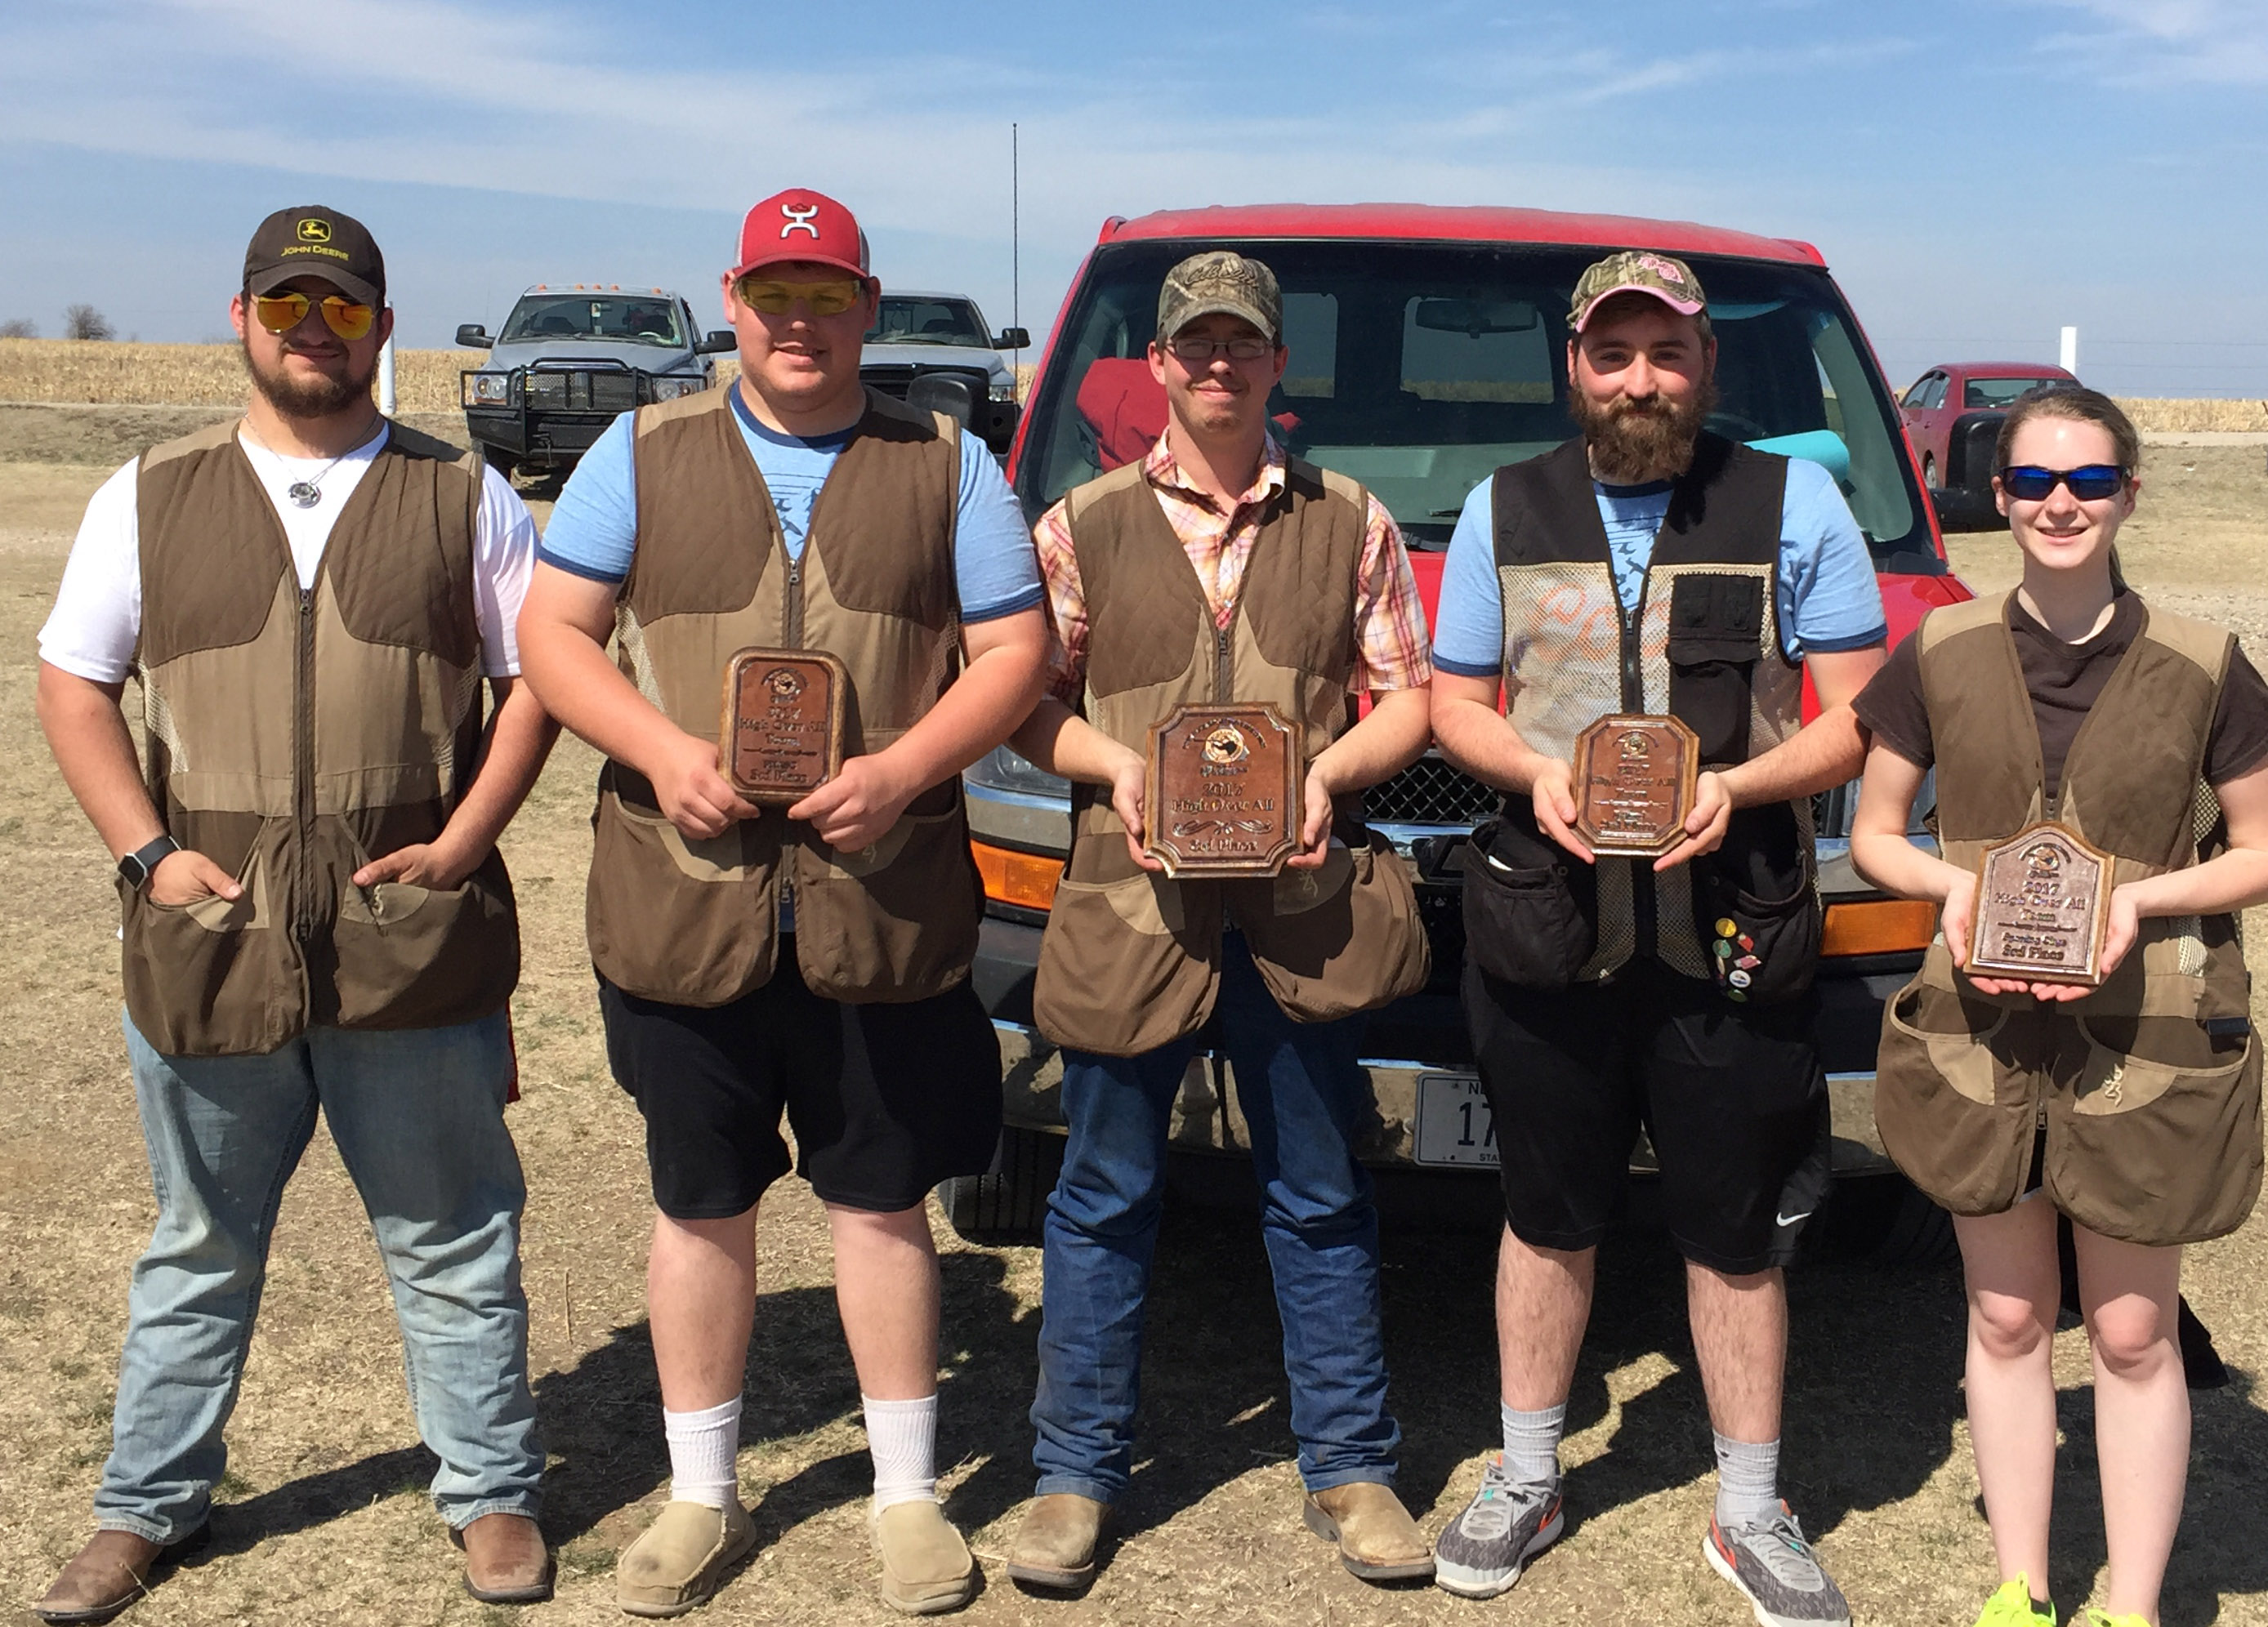 NCTA Aggie Shooting Sports team won third place overall team on Saturday in a match at Salina, Kansas. From left, are Jon Hertz, Allen Matejka, Stetson Youel, Shawn Barger, and Rilee VanDonge. (Taylor/NCTA Photo)